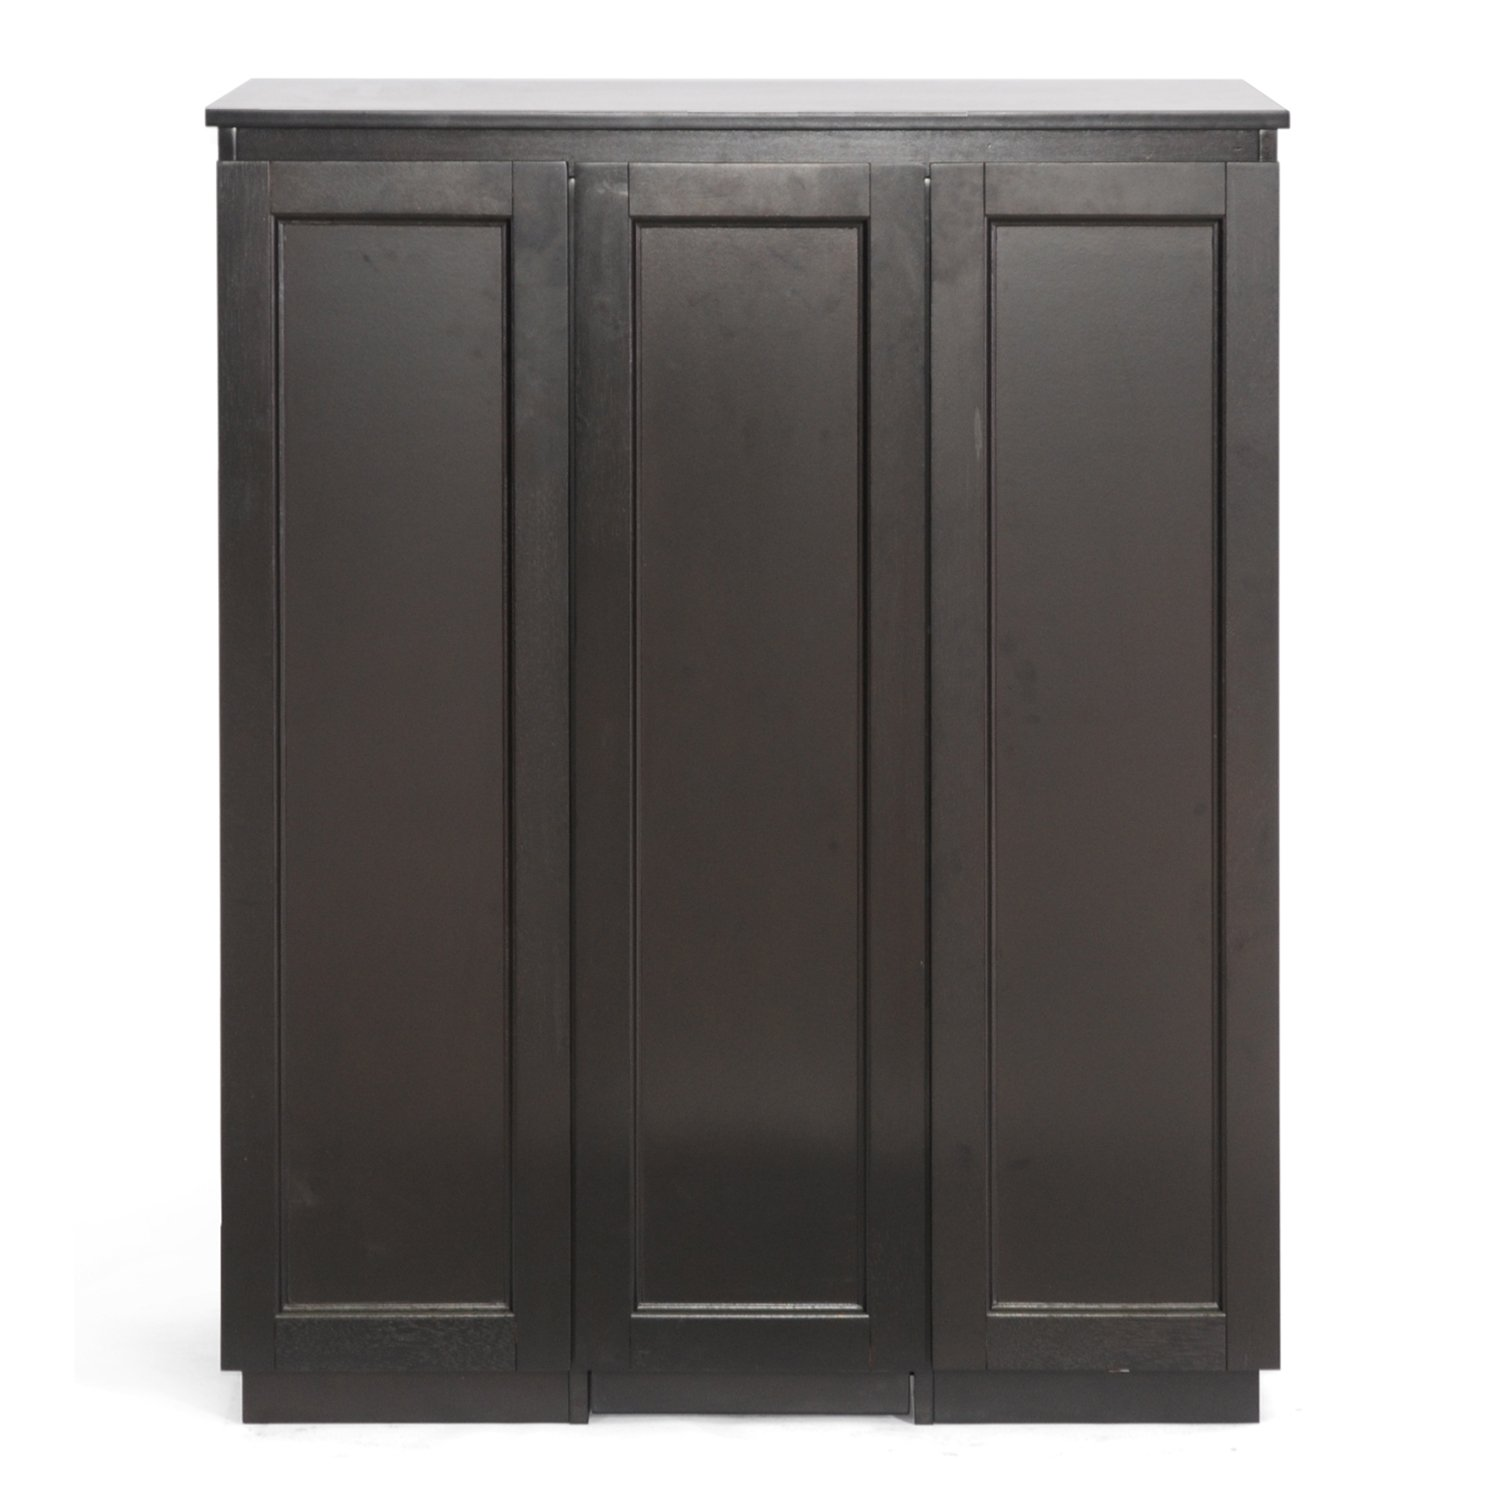 amazoncom baxton studio baltimore dark brown modern bar cabinet kitchen dining. amazoncom baxton studio baltimore dark brown modern bar cabinet